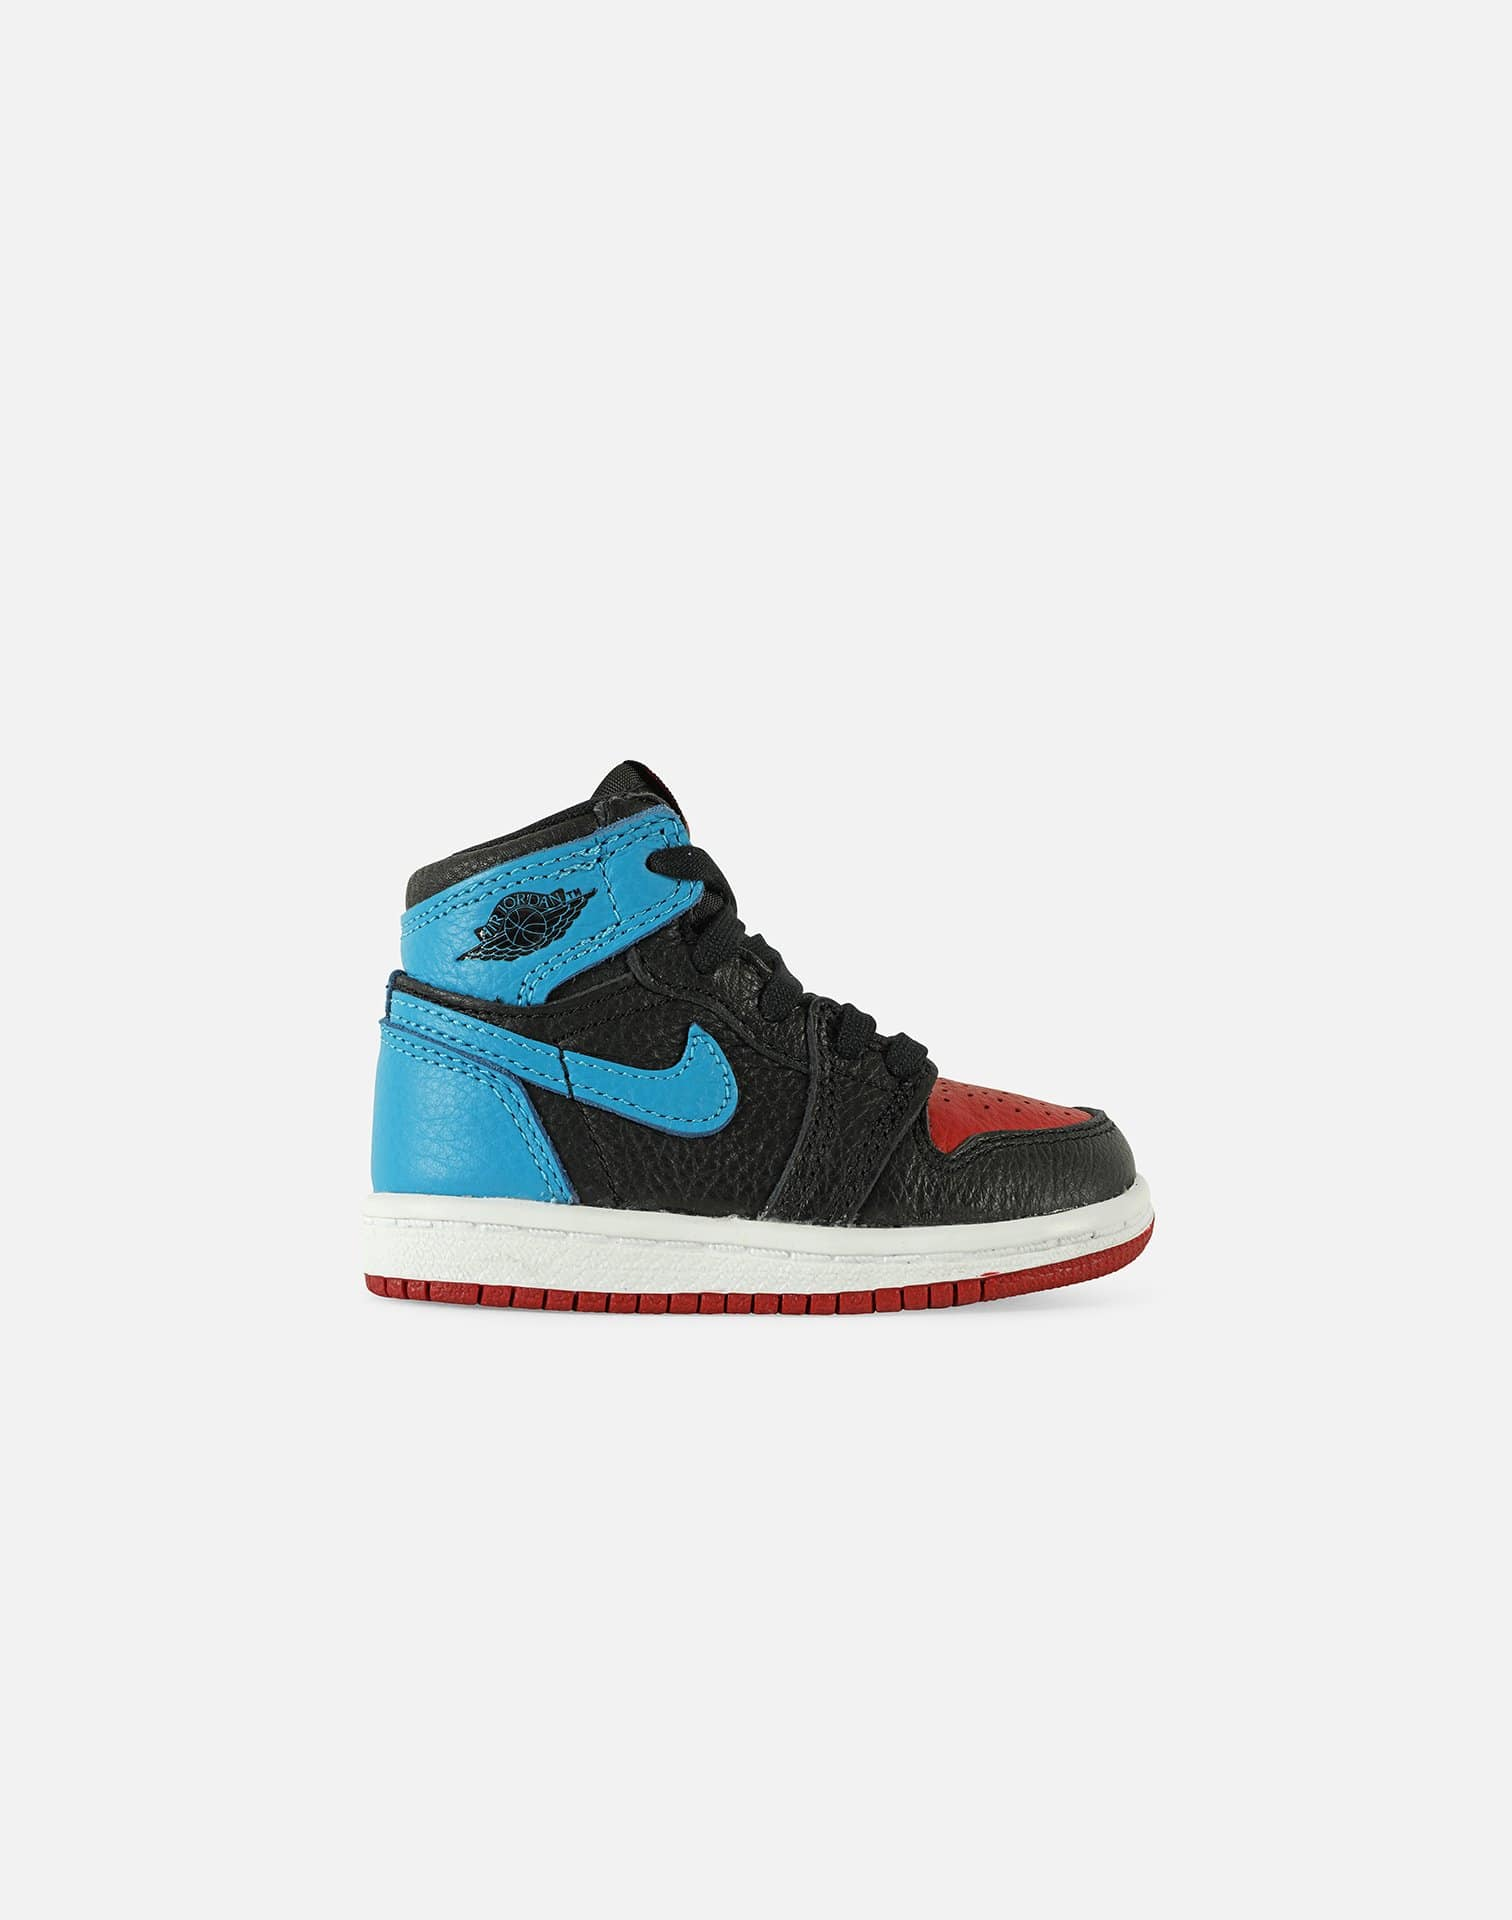 Jordan AIR JORDAN RETRO 1 HIGH OG 'UNC TO CHI' INFANT